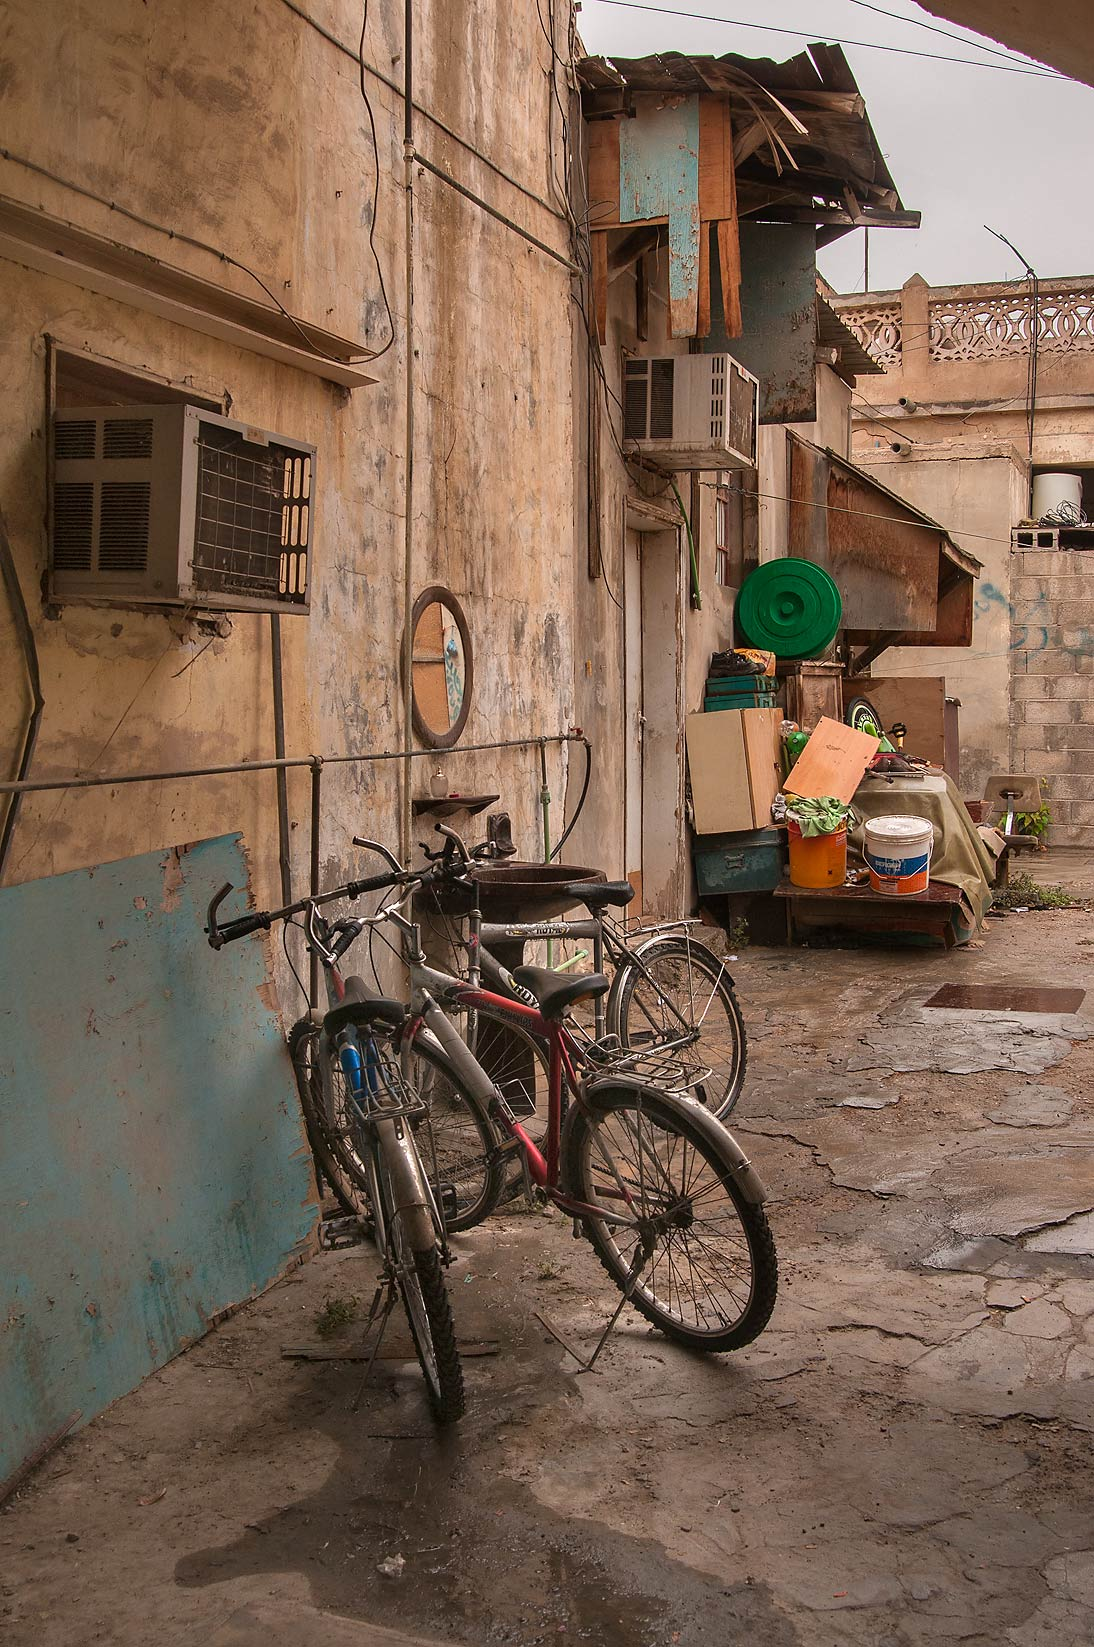 Courtyard with bicycles on Umm Wishah St., Musheirib area. Doha, Qatar